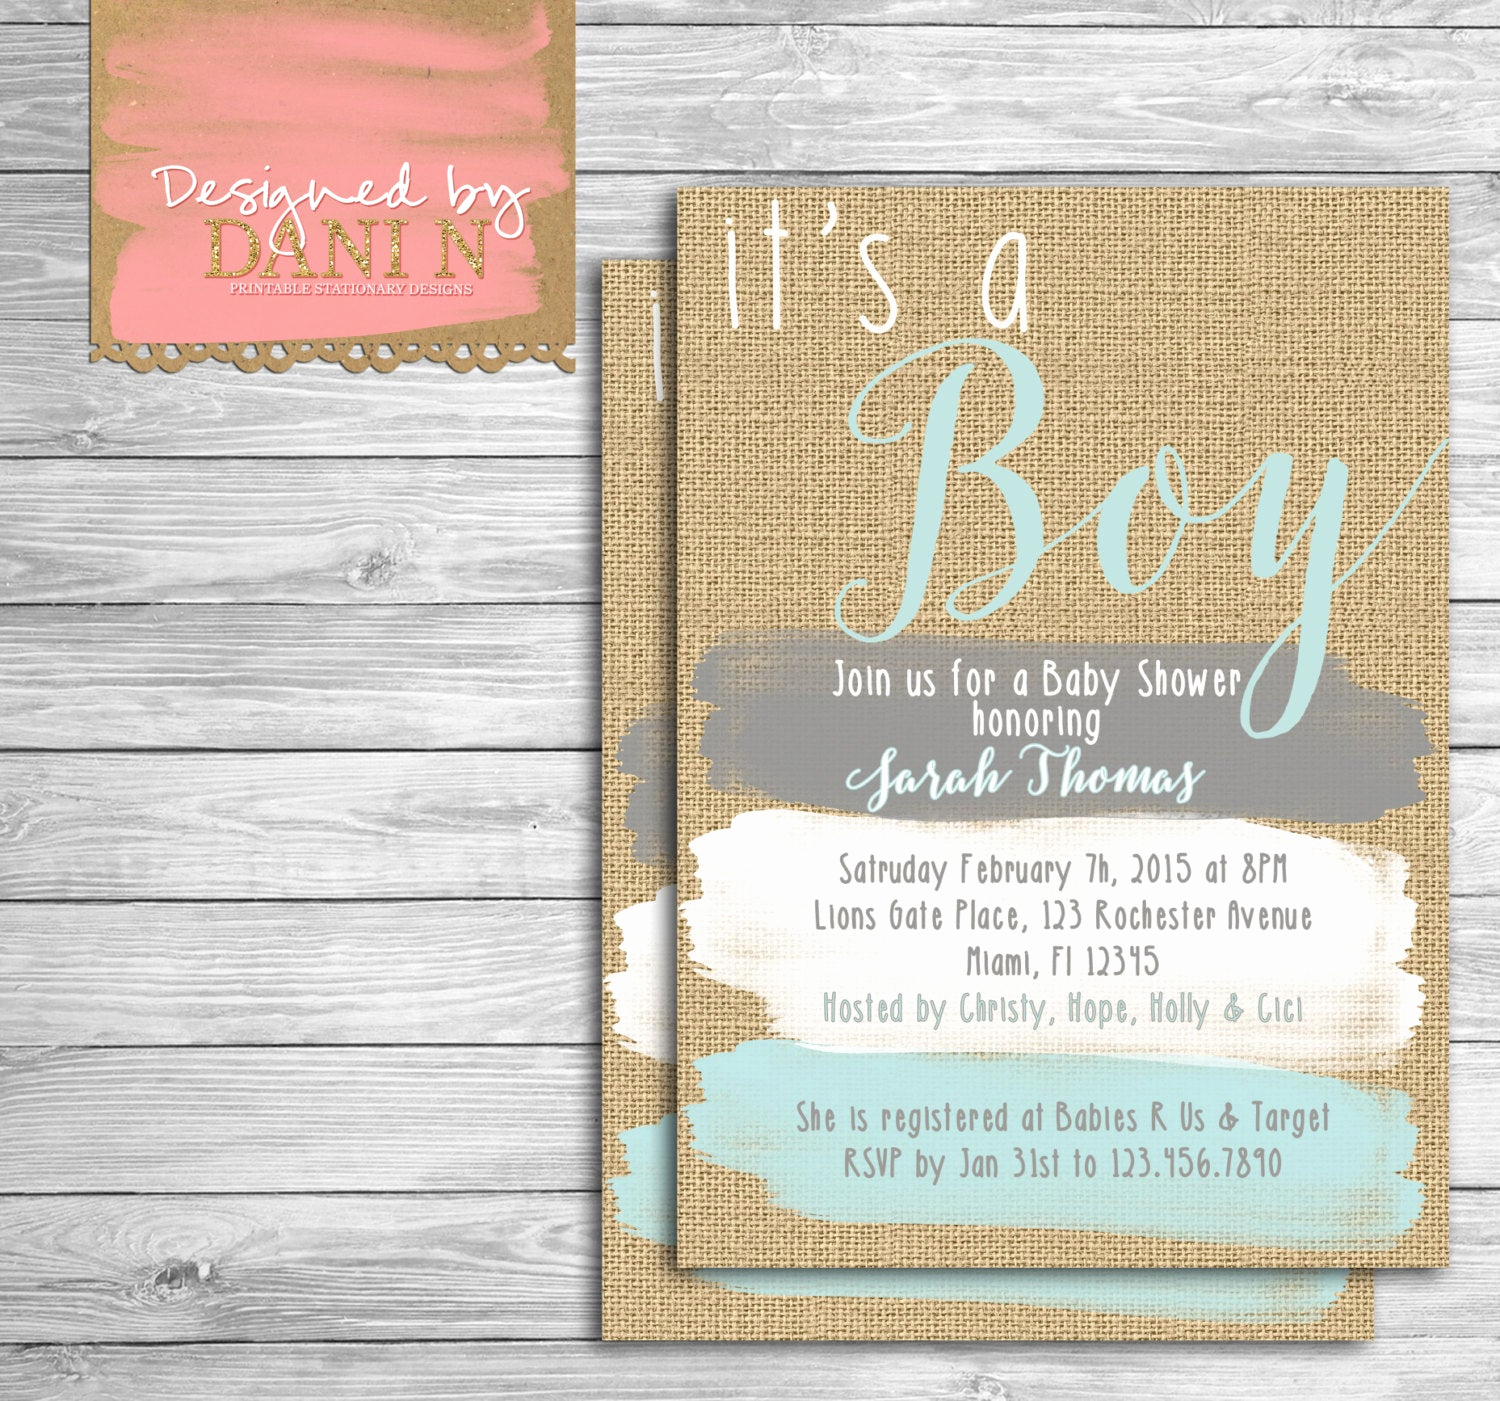 Rustic Baby Shower Invitation Awesome Baby Shower Invite Rustic Burlap Invitation Paint Strokes